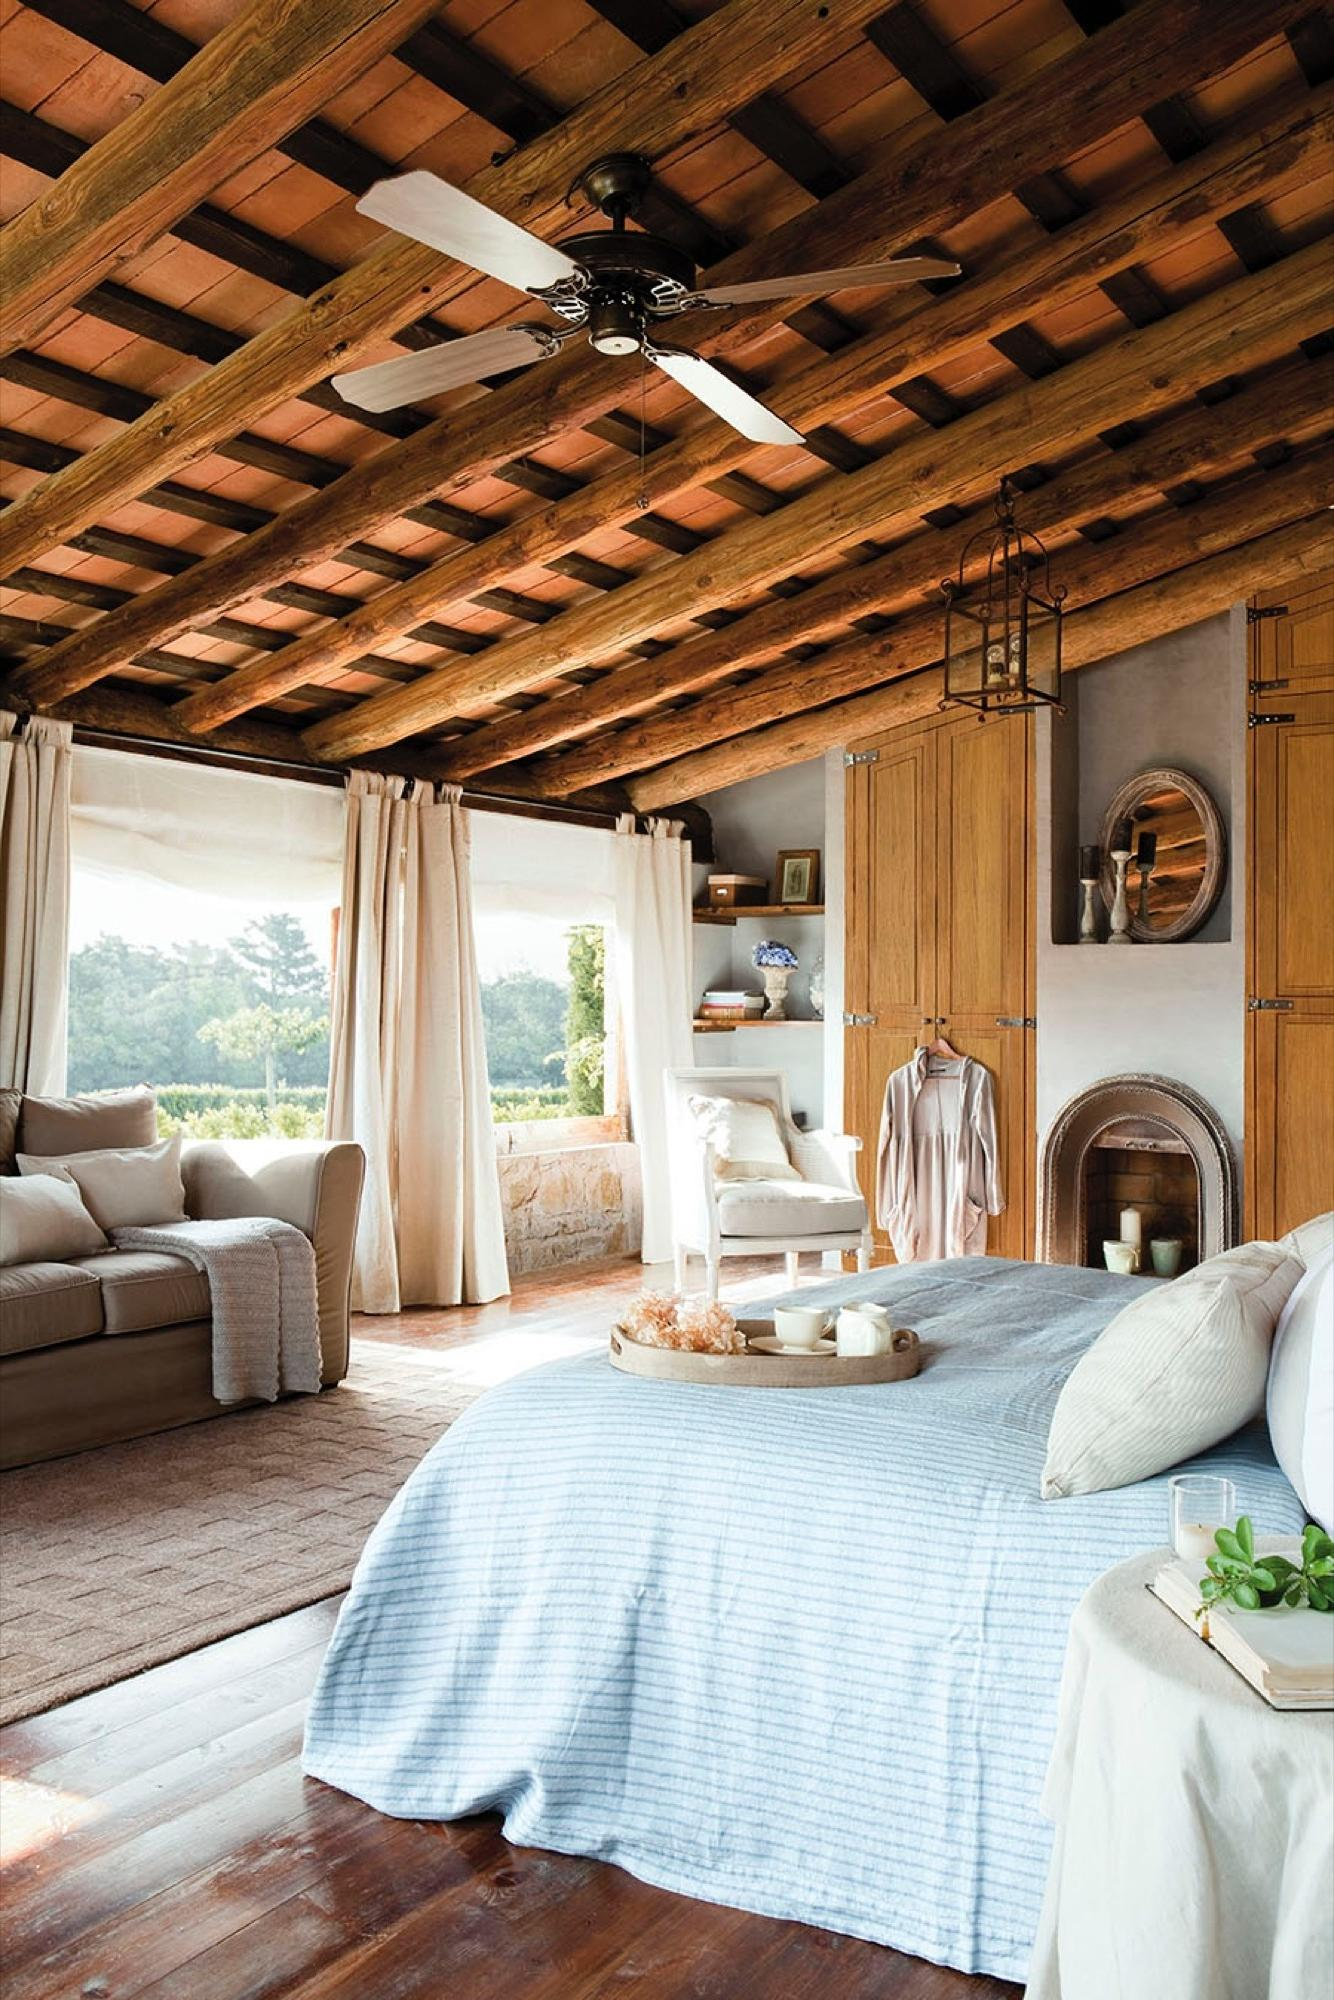 Ceiling with wooden beams and parquet flooring